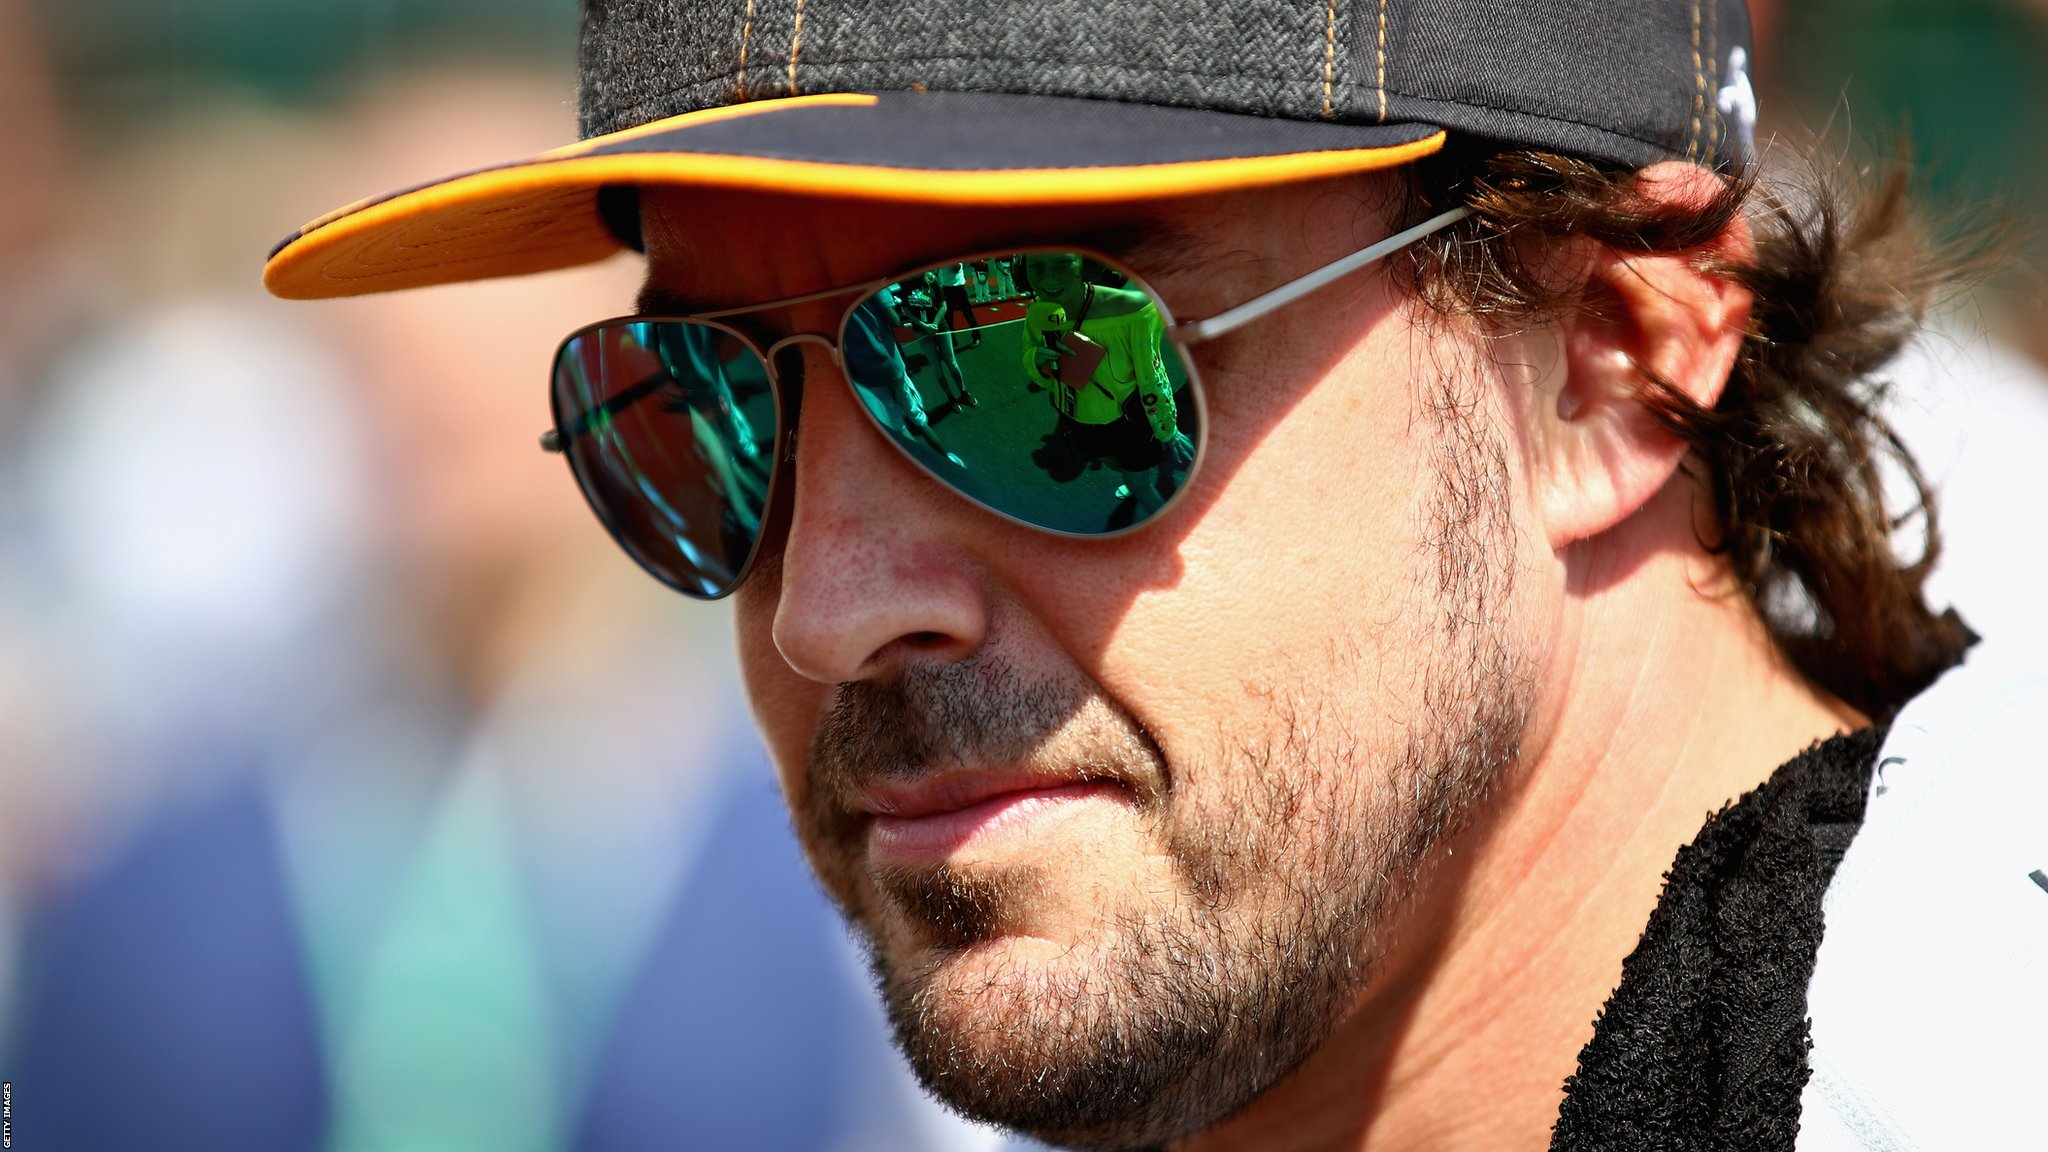 Alonso hints at major news on Twitter - gossip